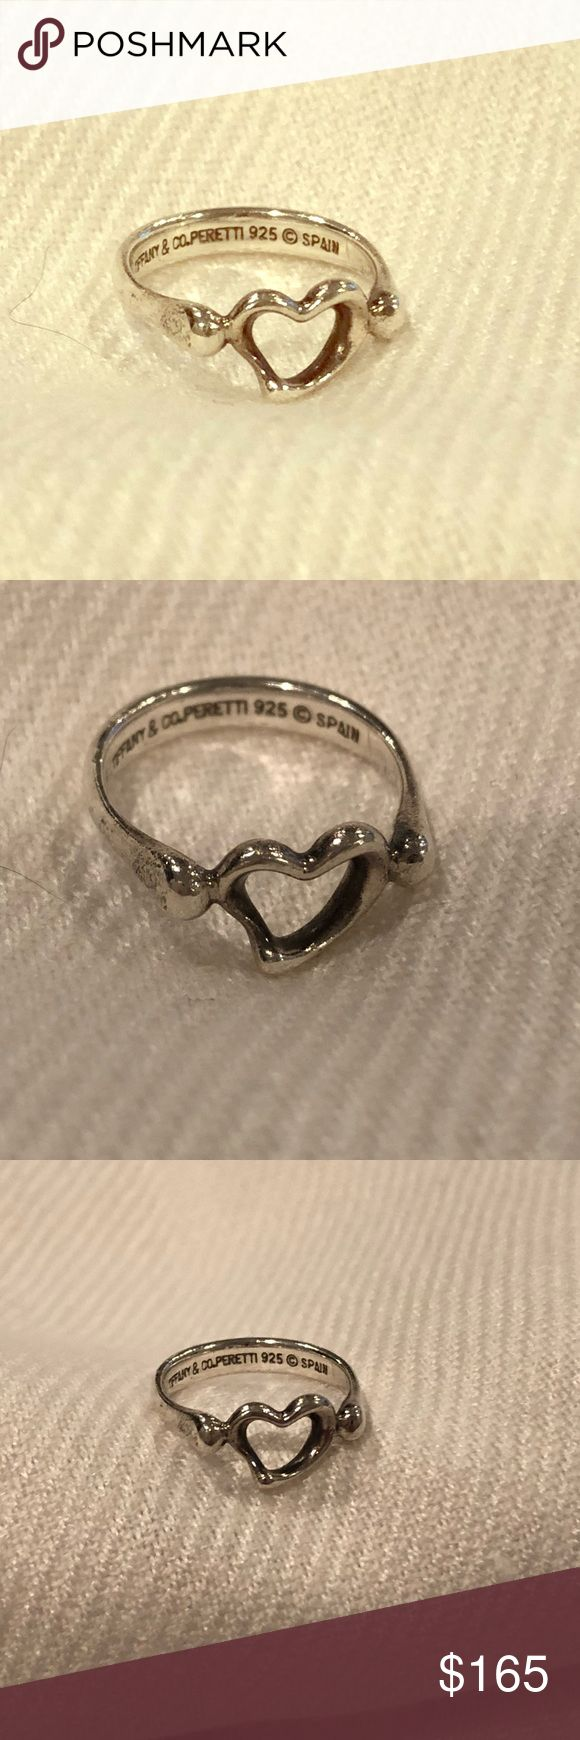 Tiffany & Co 925 Sterling Silver Ring Tiffany Elsa Peretti Open Heart Ring size 5  Brand: Tiffany & Co.  Gender: Womens  Condition: Excellent  Metal: 925 Sterling Silver  Weight: 2.3 grams  Hallmark: .925, Tiffany & Co., Spain, copyright symbol Tiffany & Co. Jewelry Rings